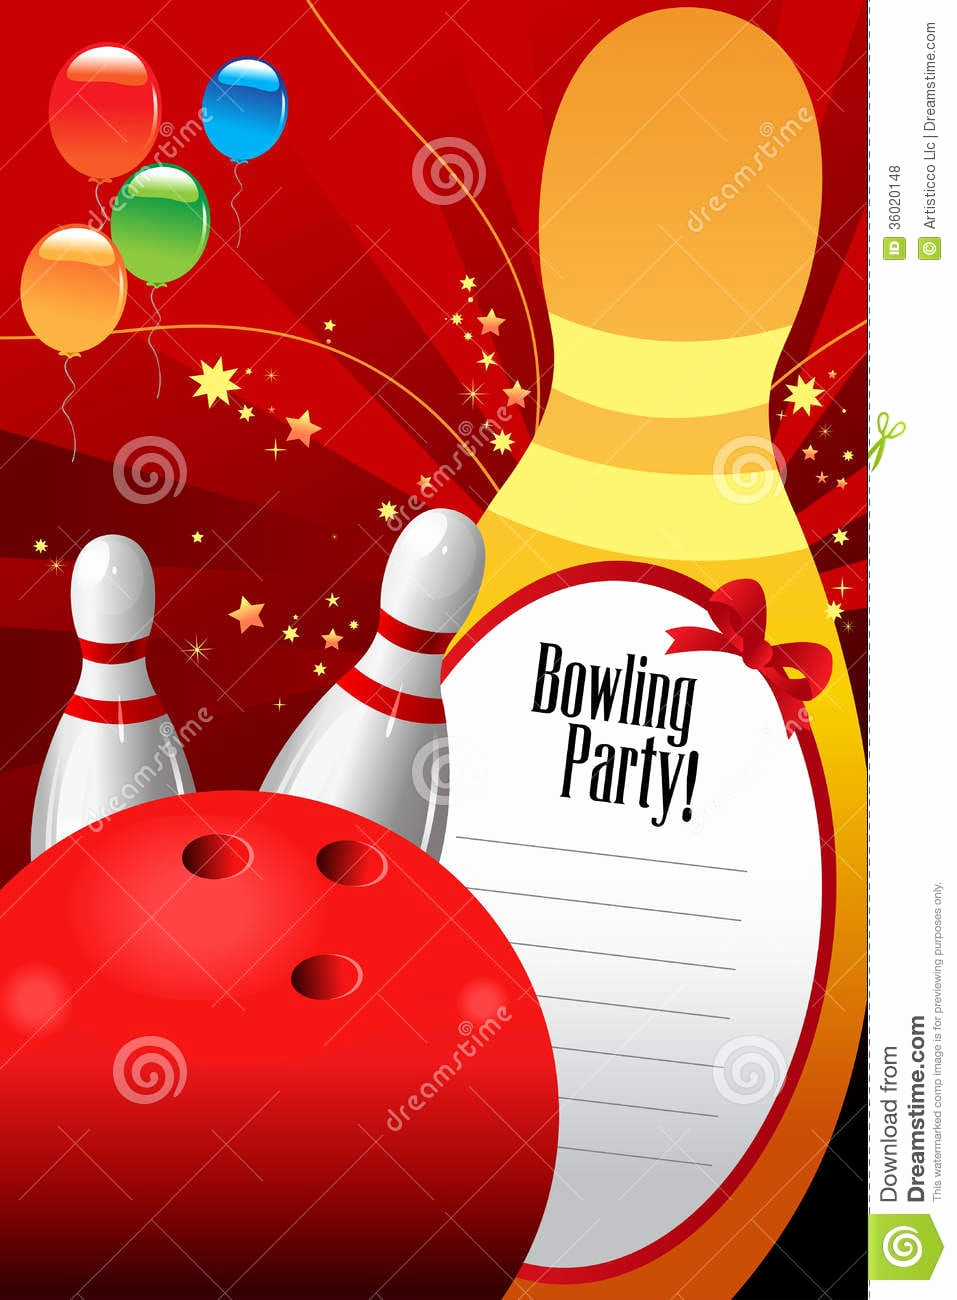 Bowling Party Invitation Templates Free Awesome Free Bowling Invitation Template